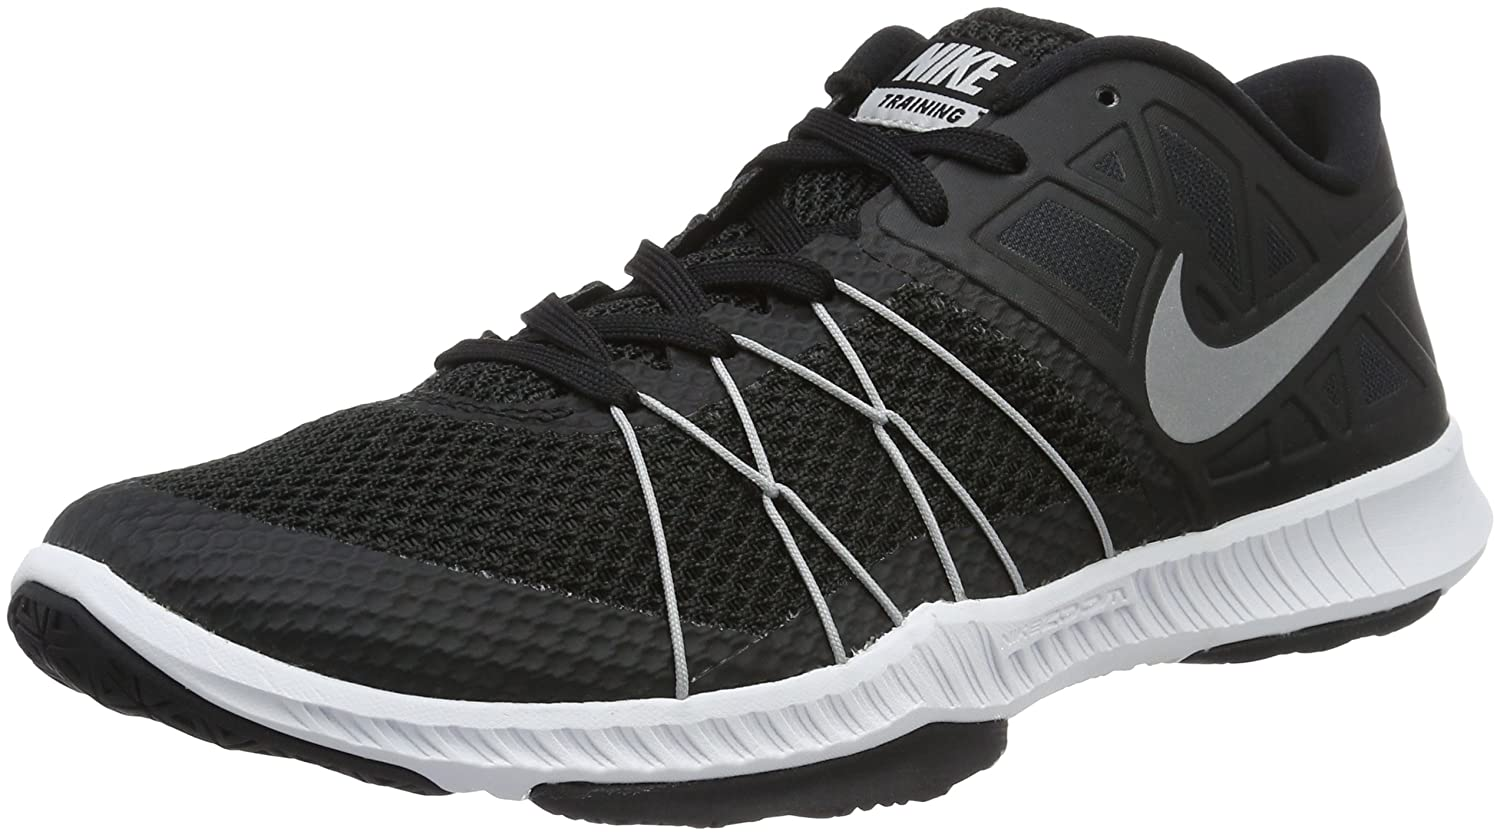 44c0a8c96885c Nike Men s Black Metallic Silver Zoom Train Incredibly Fast Cross Trainer -  Uk 7  Buy Online at Low Prices in India - Amazon.in